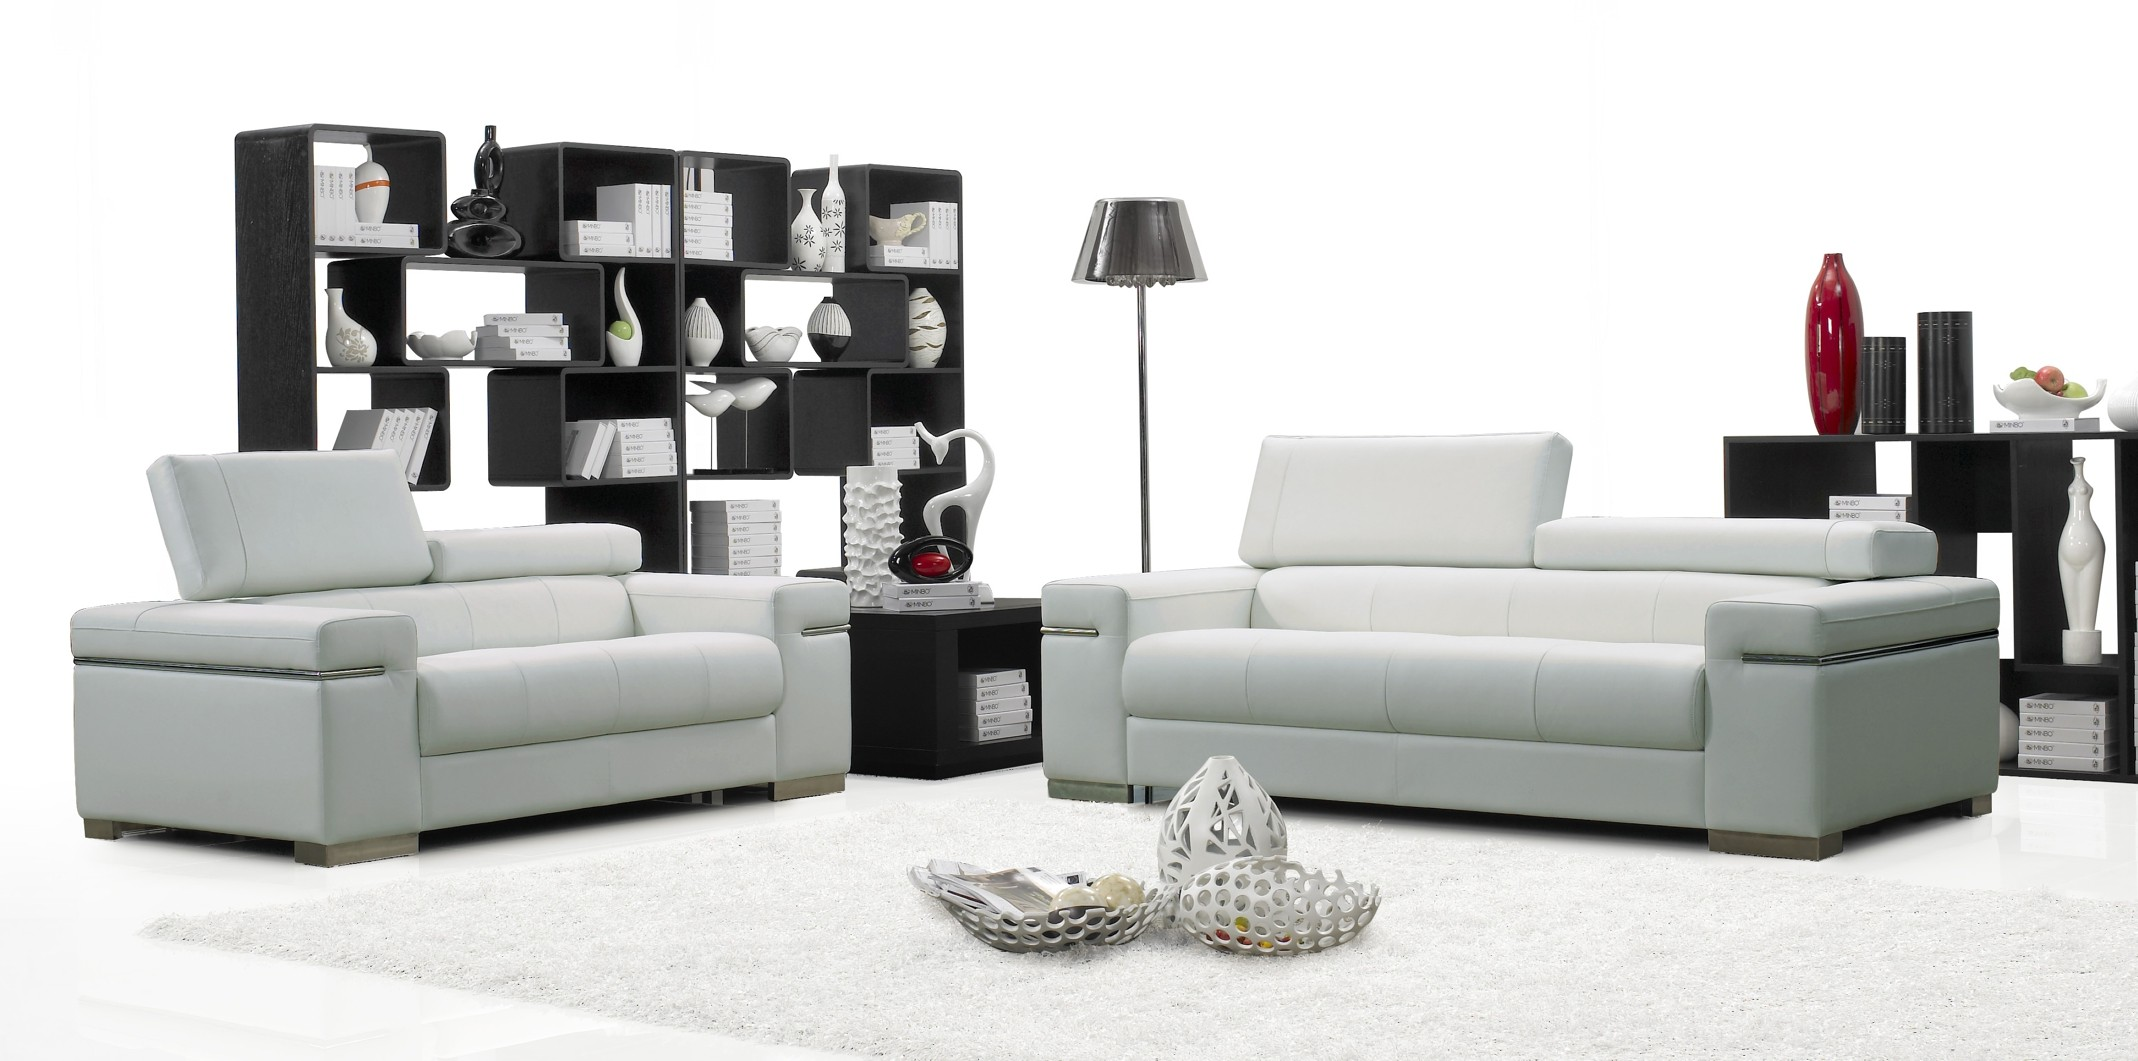 True modern furniture online homesfeed for At home furniture